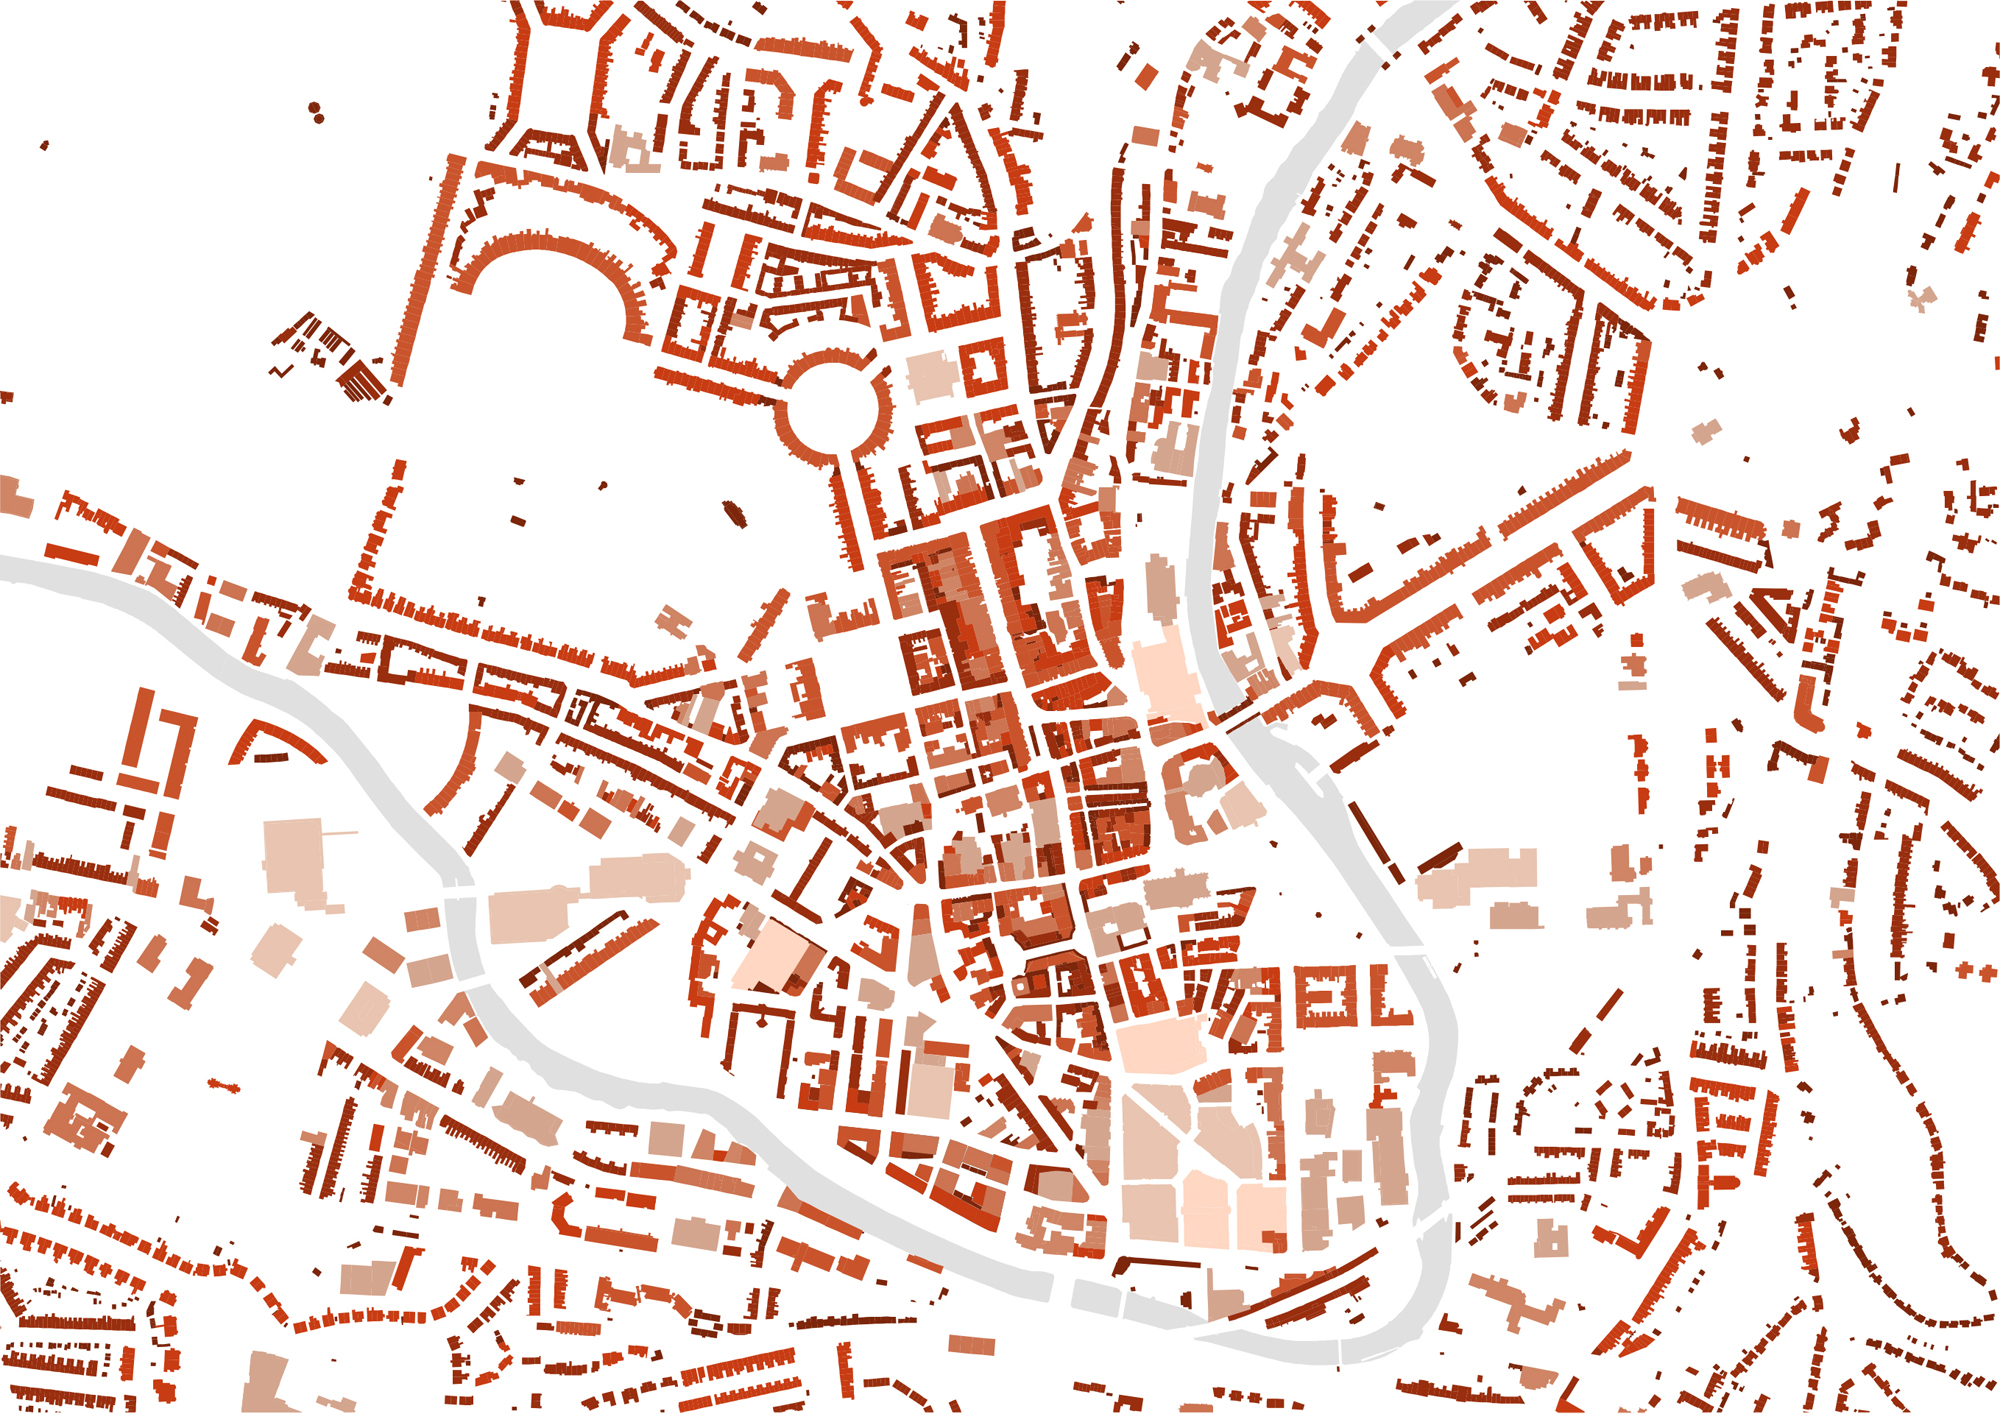 1050_Streets and Squares Study.dgn